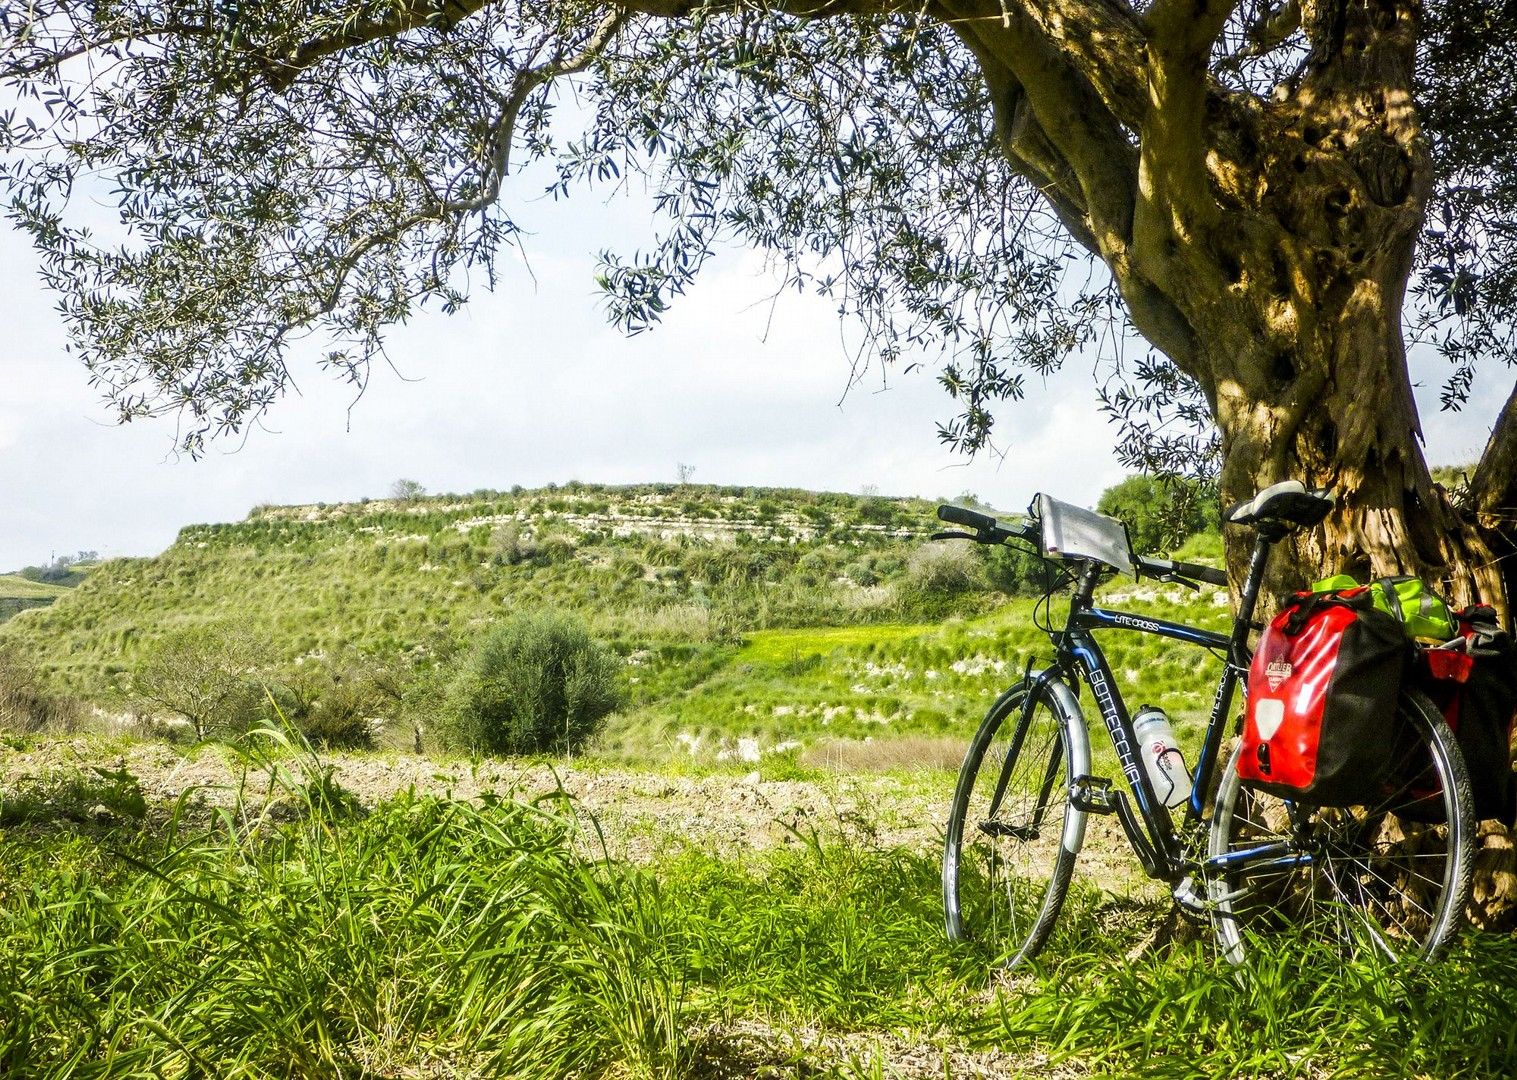 cycling-sicily-italy-skedaddle-leisure-self-guided.jpg - Italy - Sicily - Self-Guided Leisure Cycling Holiday - Italia Leisure and Family Cycling